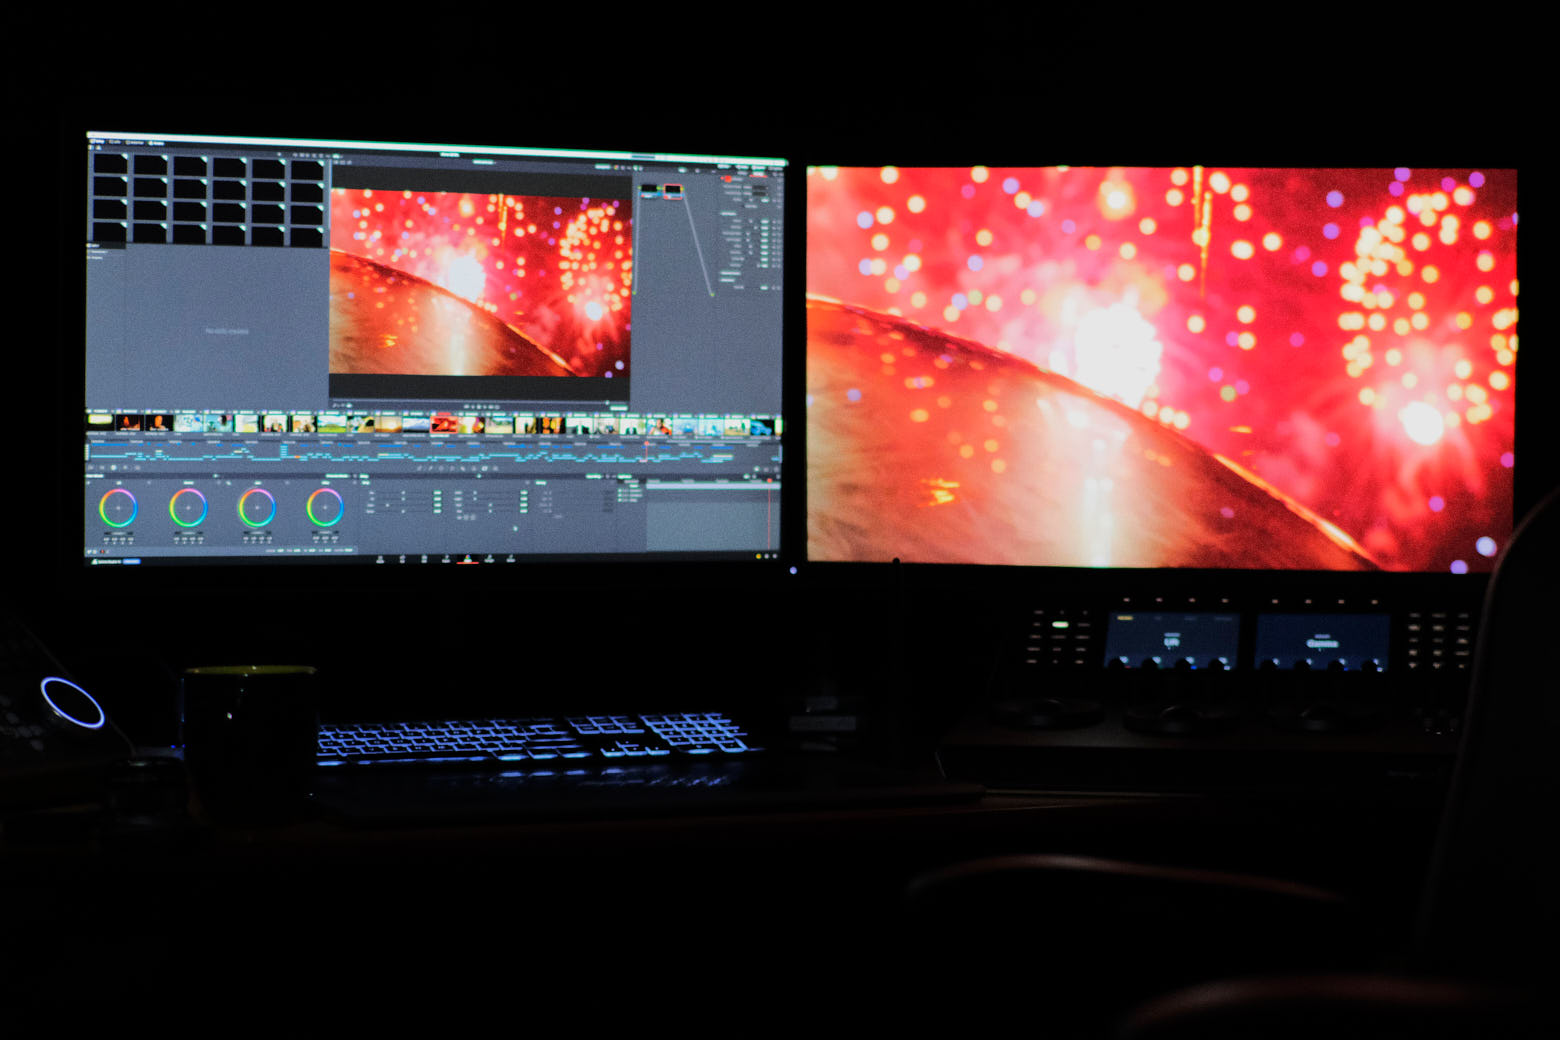 Editing suite NLE color grading